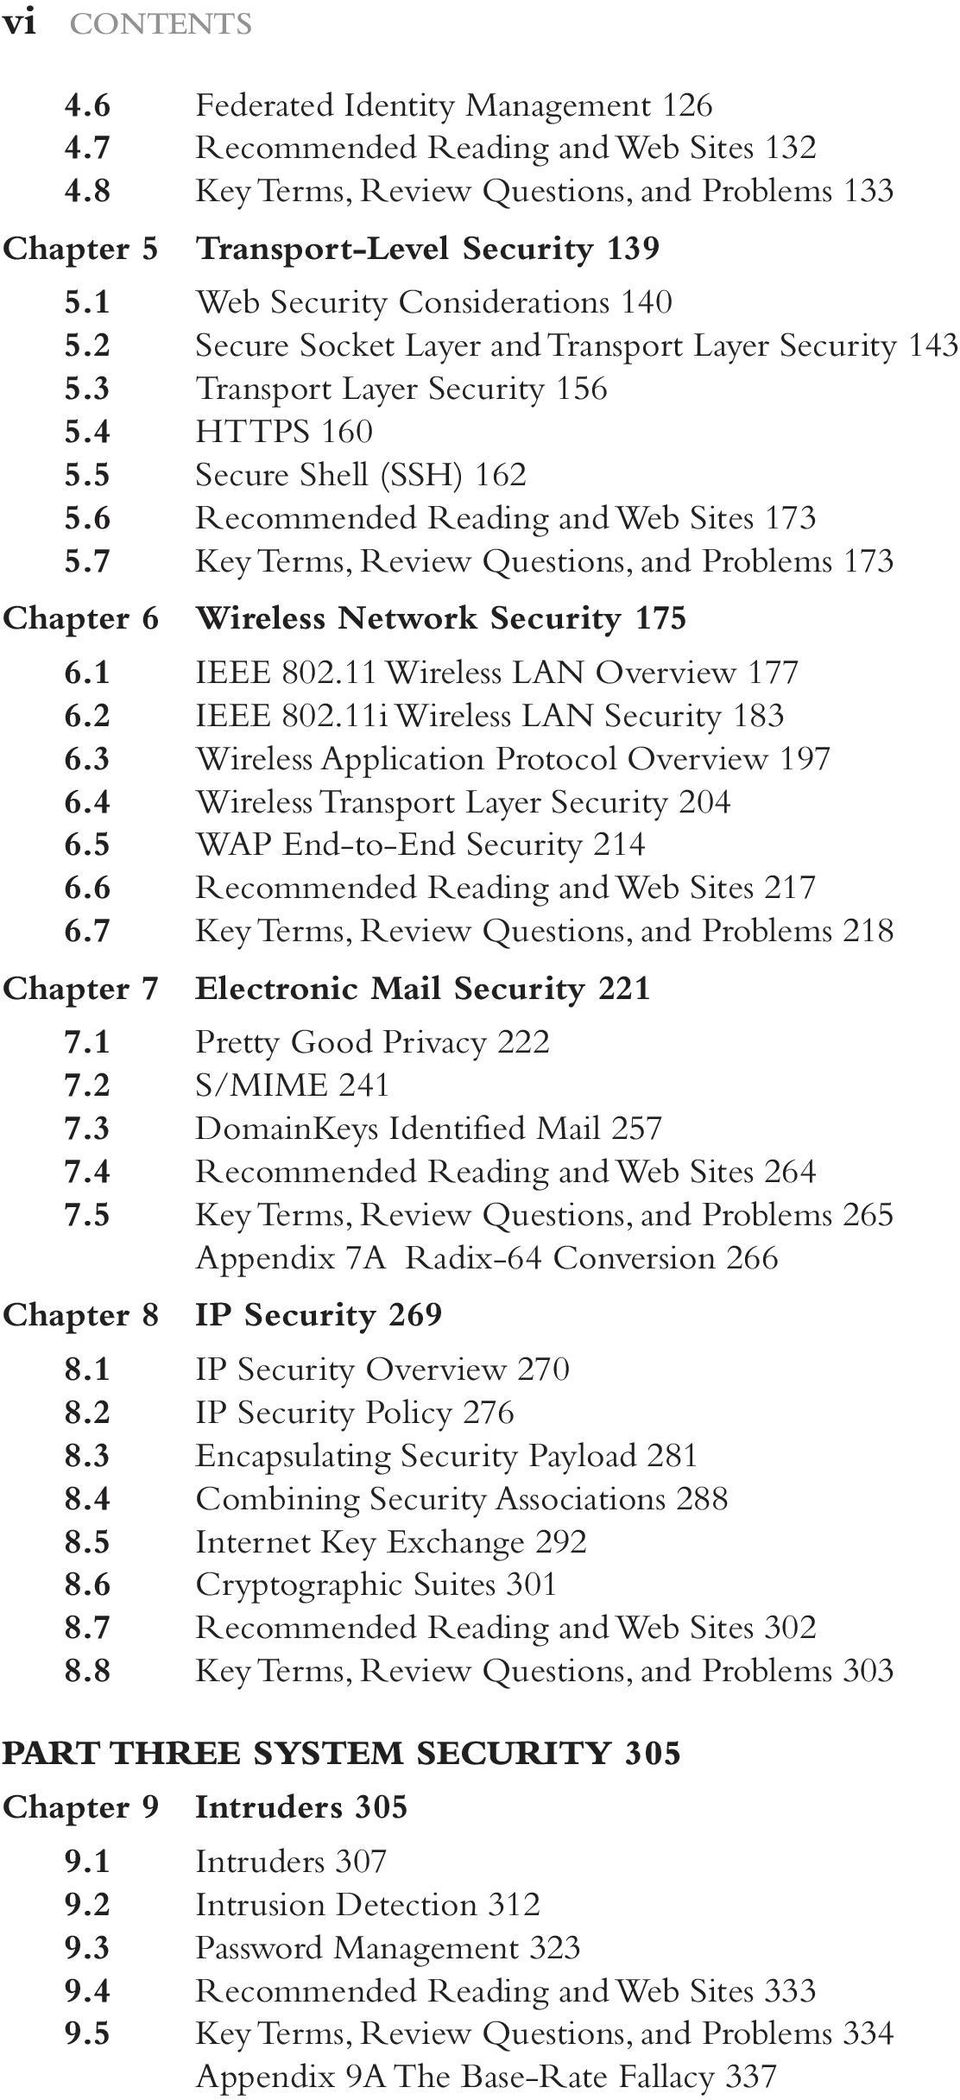 6 Recommended Reading and Web Sites 173 5.7 Key Terms, Review Questions, and Problems 173 Chapter 6 Wireless Network Security 175 6.1 IEEE 802.11 Wireless LAN Overview 177 6.2 IEEE 802.